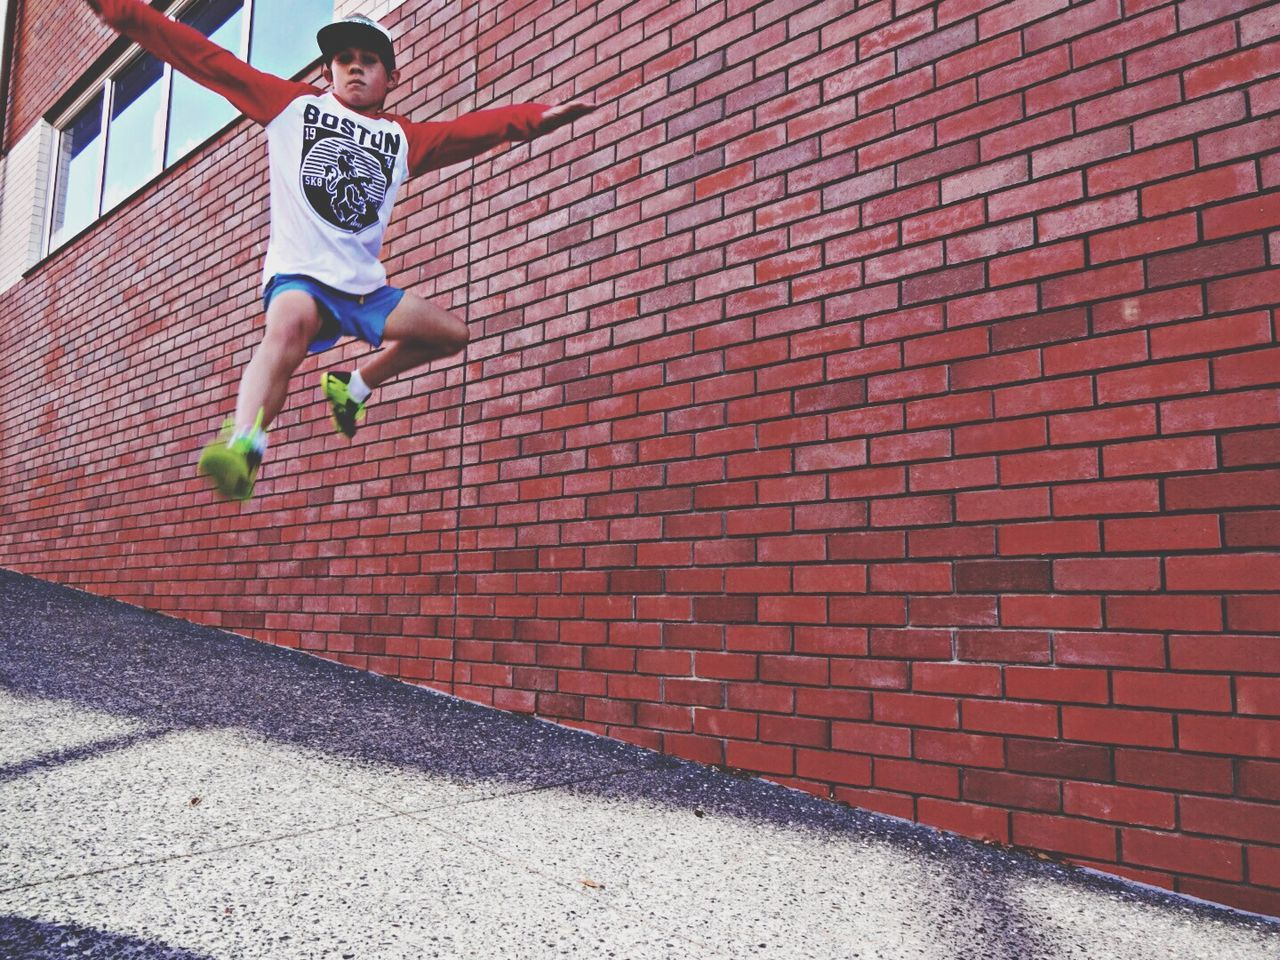 defying gravity after a library visit Hanging Out The Moment - 2014 EyeEm Awards